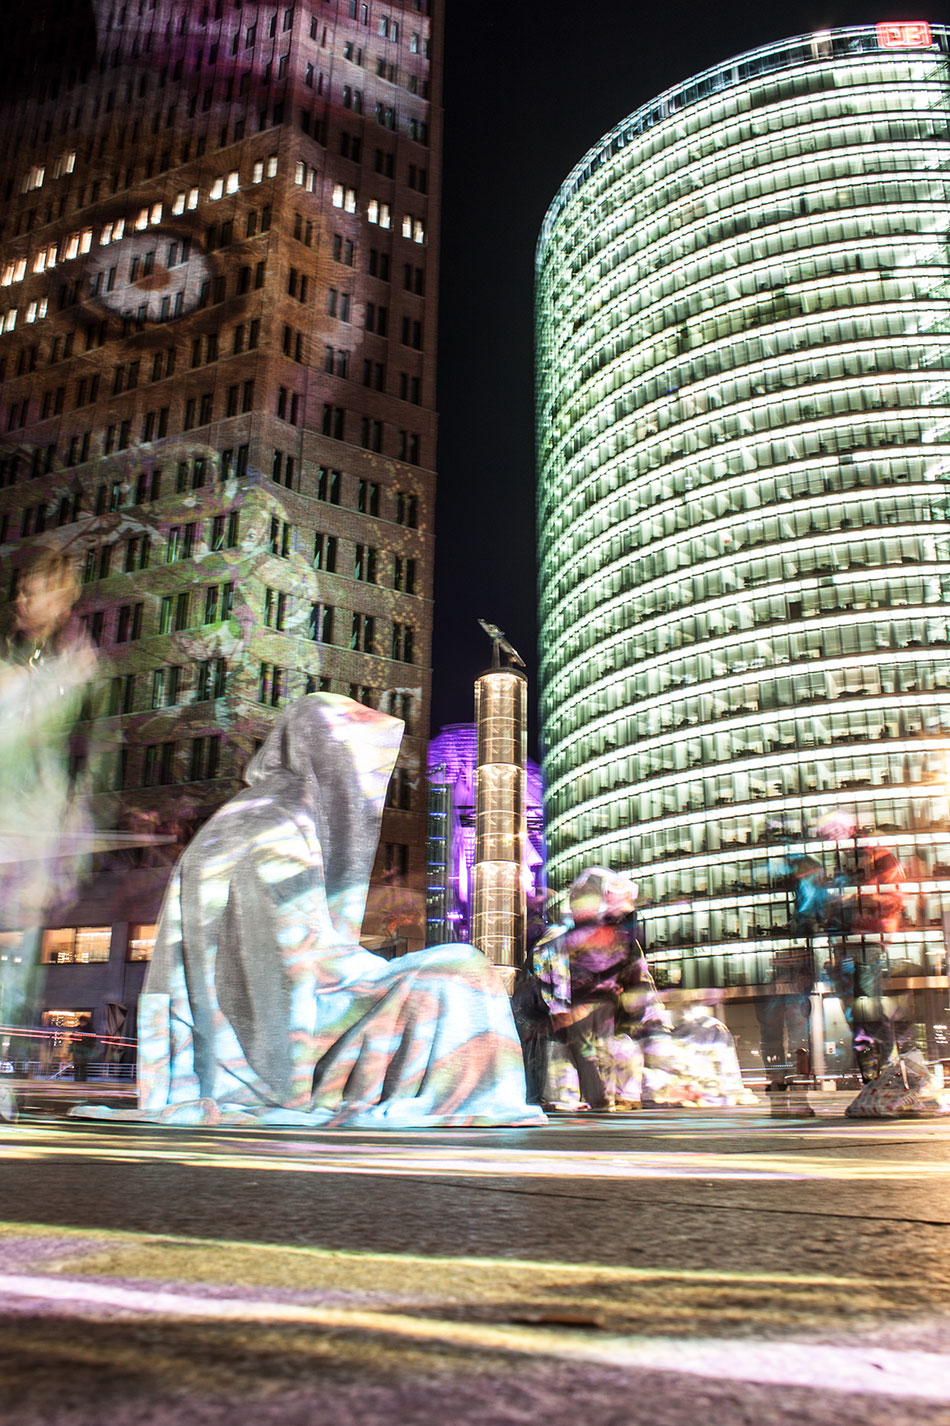 festival-of-lights-berlin-potzdamer-platz-light-art-show-exhibition-lumina-guardians-of-time-manfred-kili-kielnhofer-contemporary-arts-design-sculpture-3201